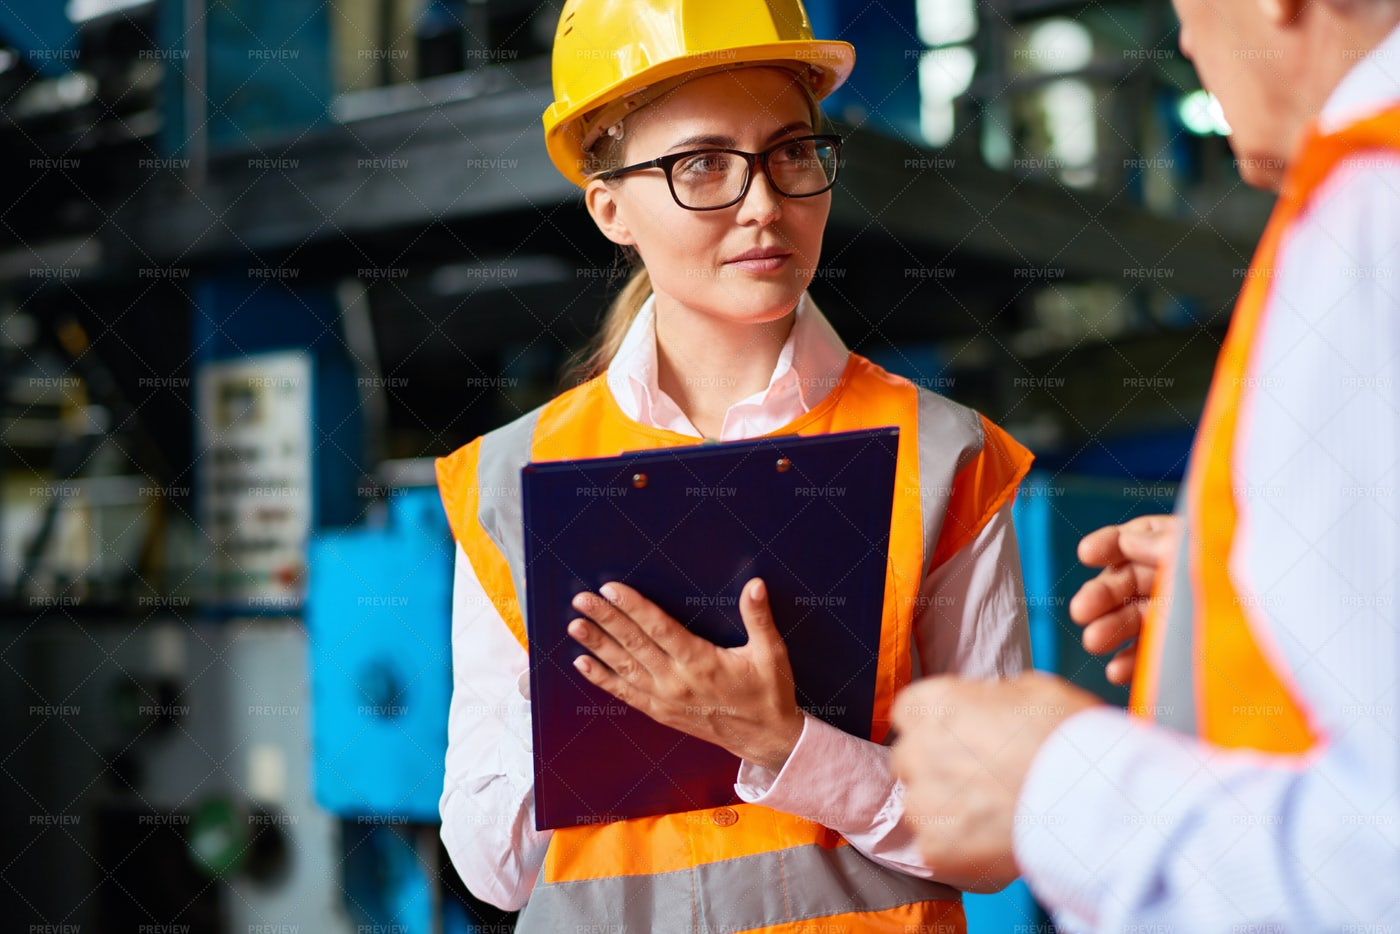 Safety Inspection At Factory...: Stock Photos